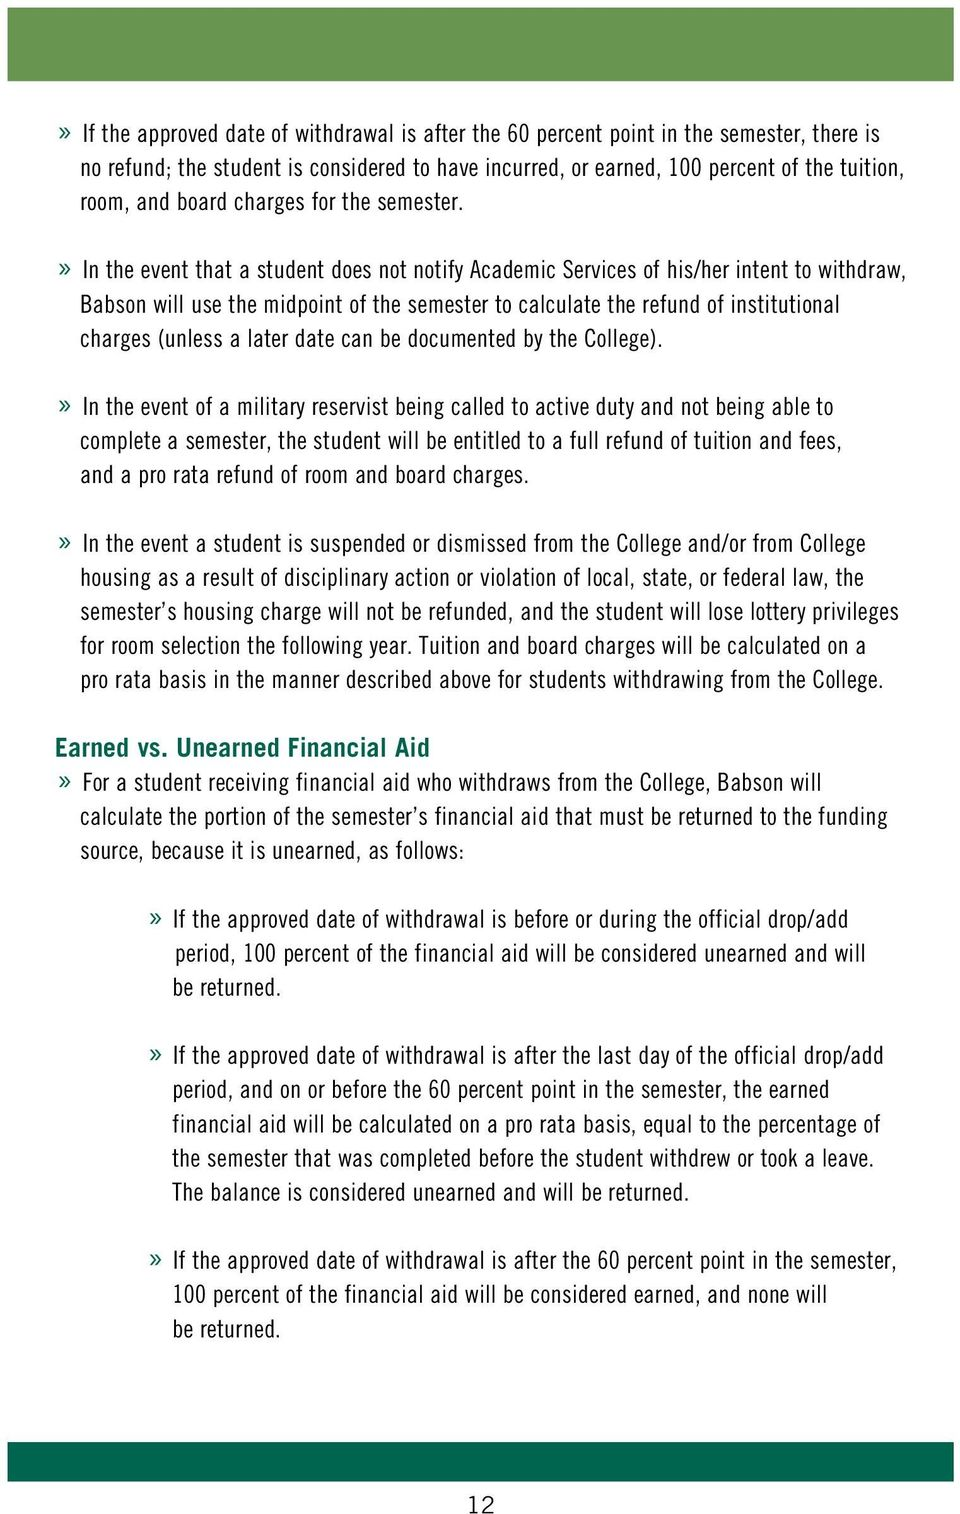 » In the event that a student does not notify Academic Services of his/her intent to withdraw, Babson will use the midpoint of the semester to calculate the refund of institutional charges (unless a